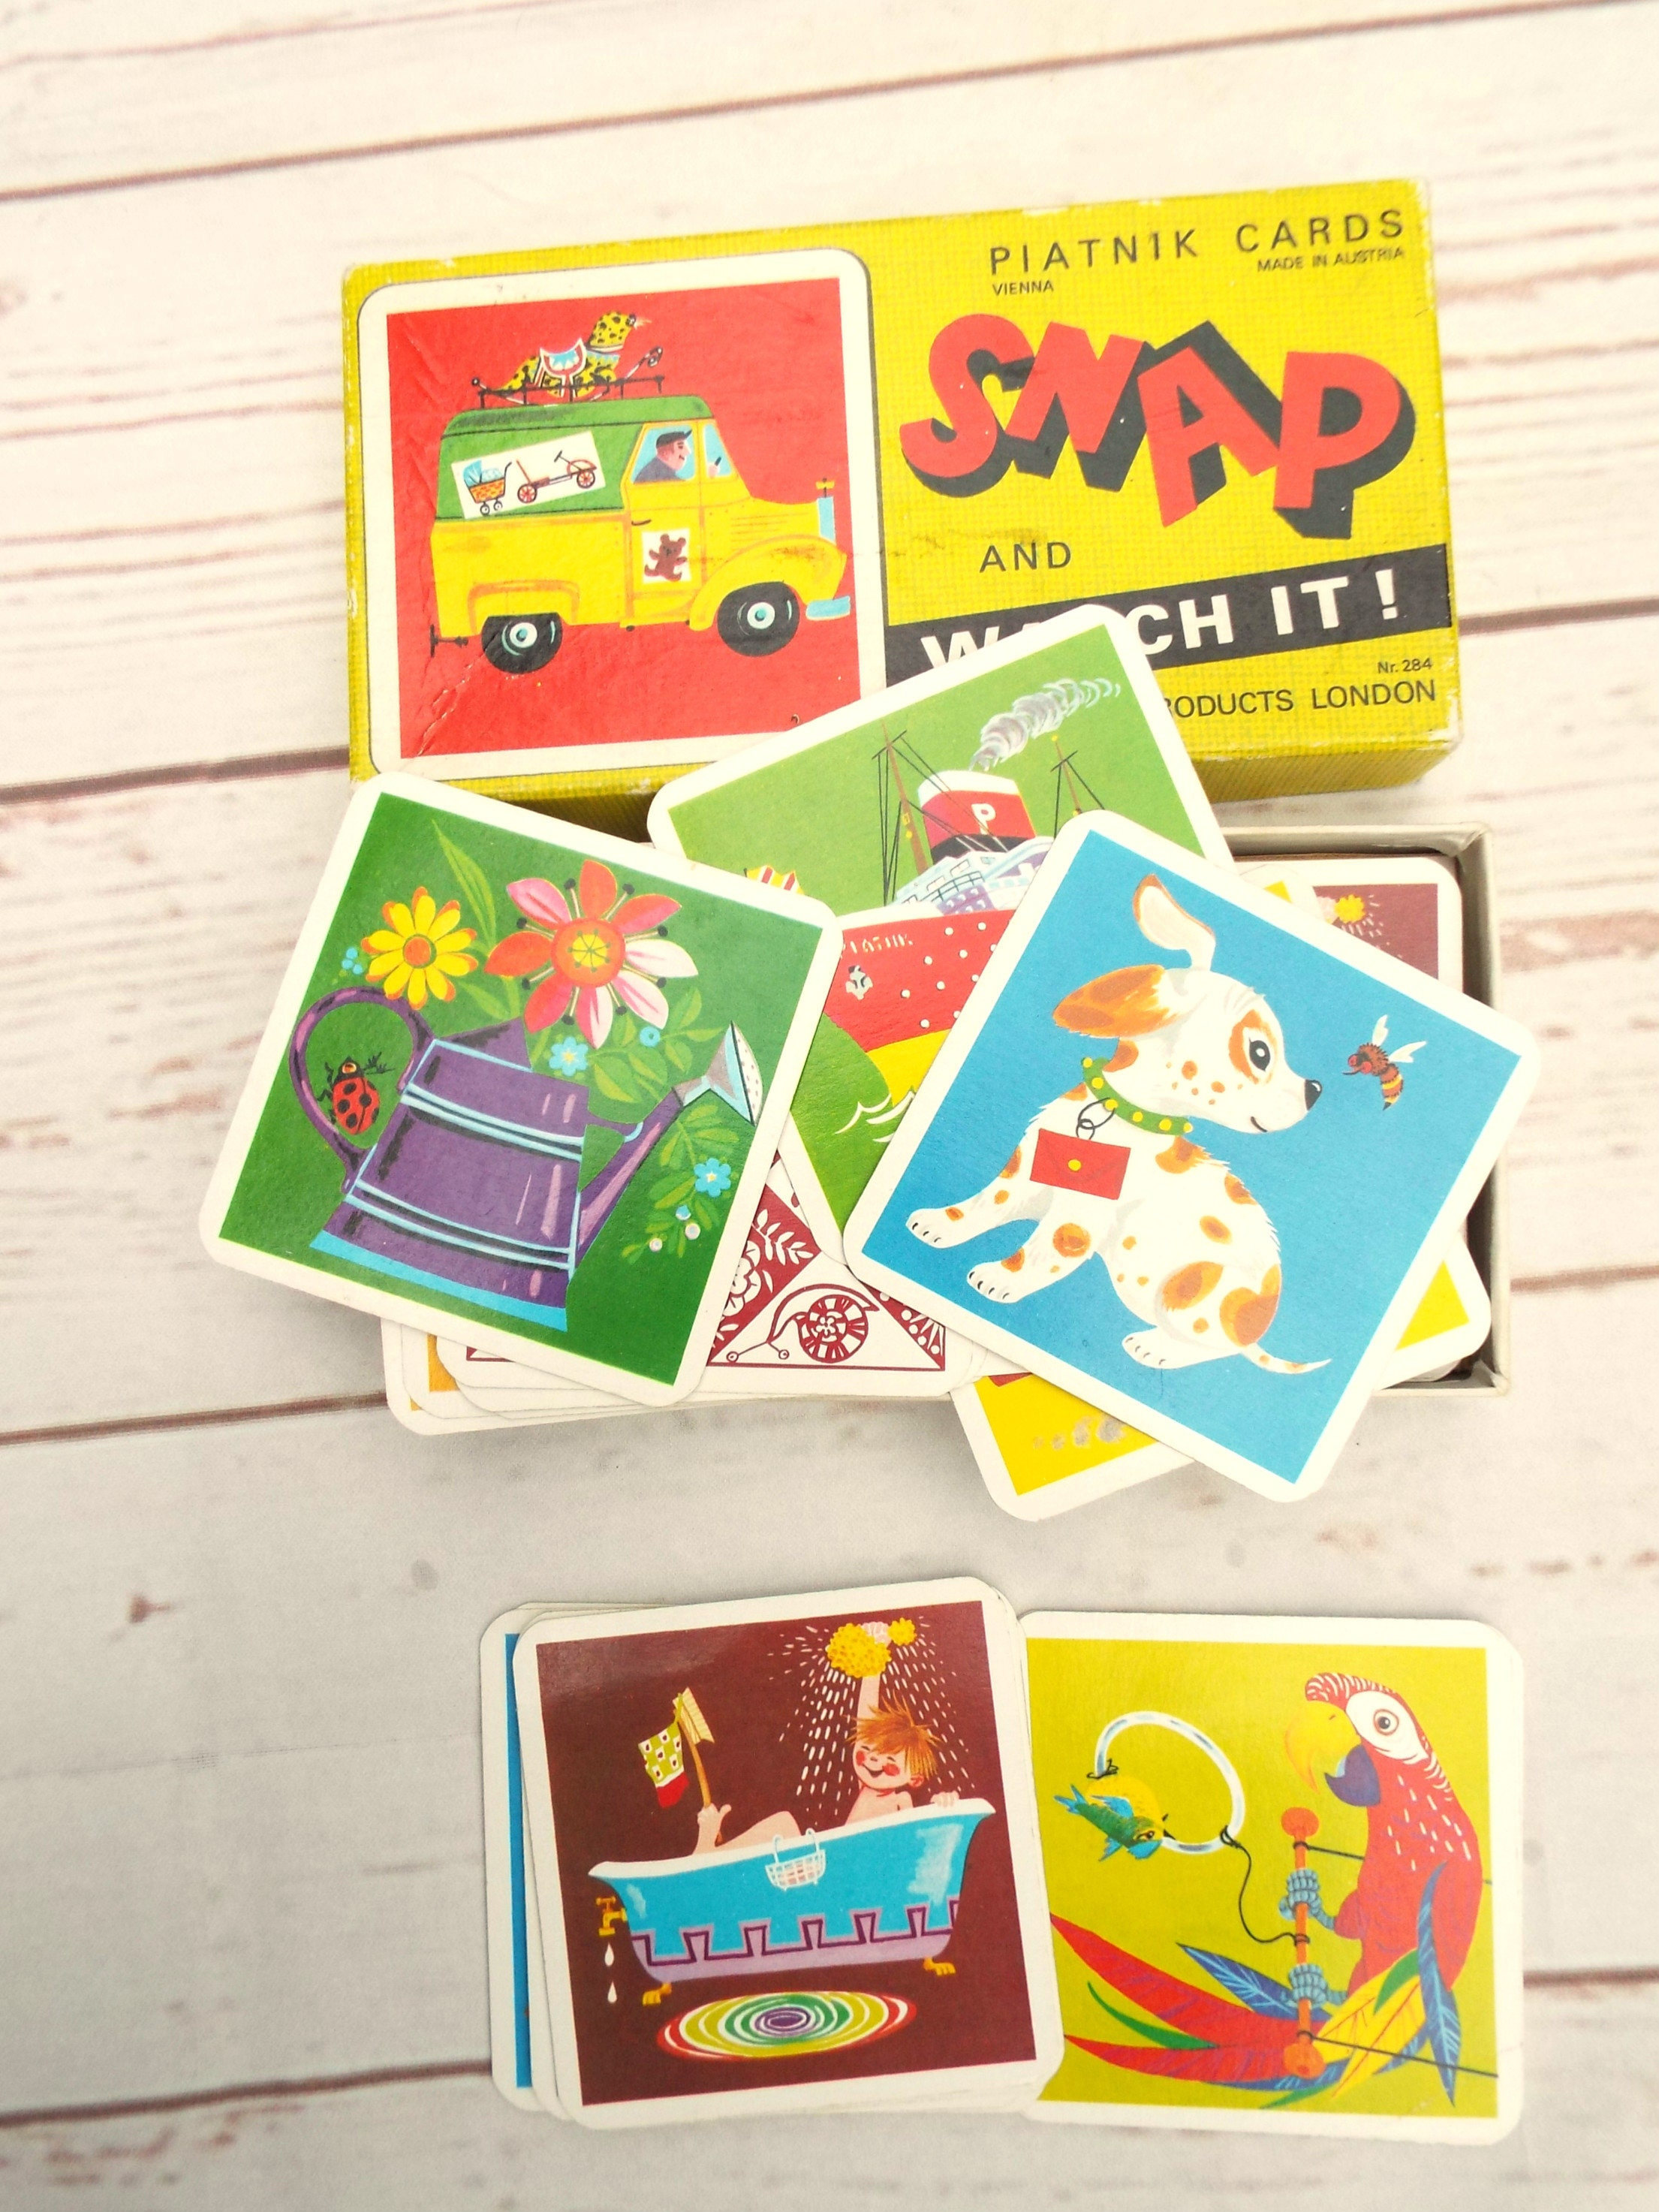 Vintage Snap Cards  Vintage Kids game  Vintage Card Game  70s Vintage Game  Retro Games  Piatnik Cards